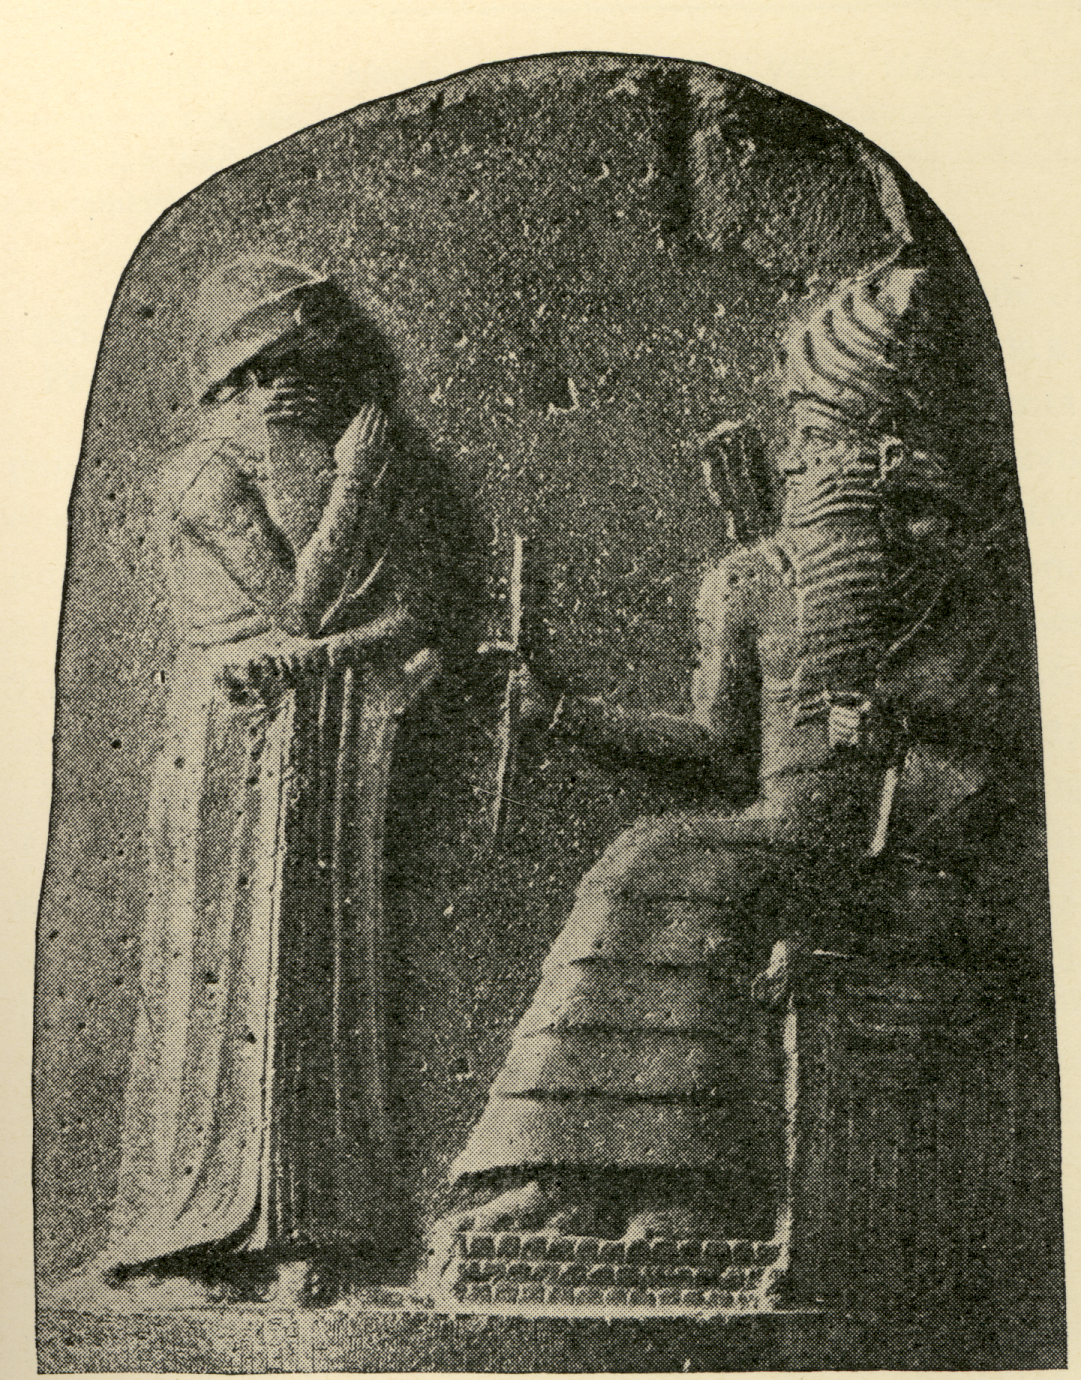 Shamash & giant mixed-breed Babylonian King Hammurabi the Great, kingship established in heaven was brought to Earth and given to earthling mixed-breeds, who were protected by their bloodline ancestor alien giant gods, sons of god(s) who came down to Earth, & had sex with the daughters of men, producing offspring who were much bigger, stronger, faster, smarter, & lived much longer than the earthlings